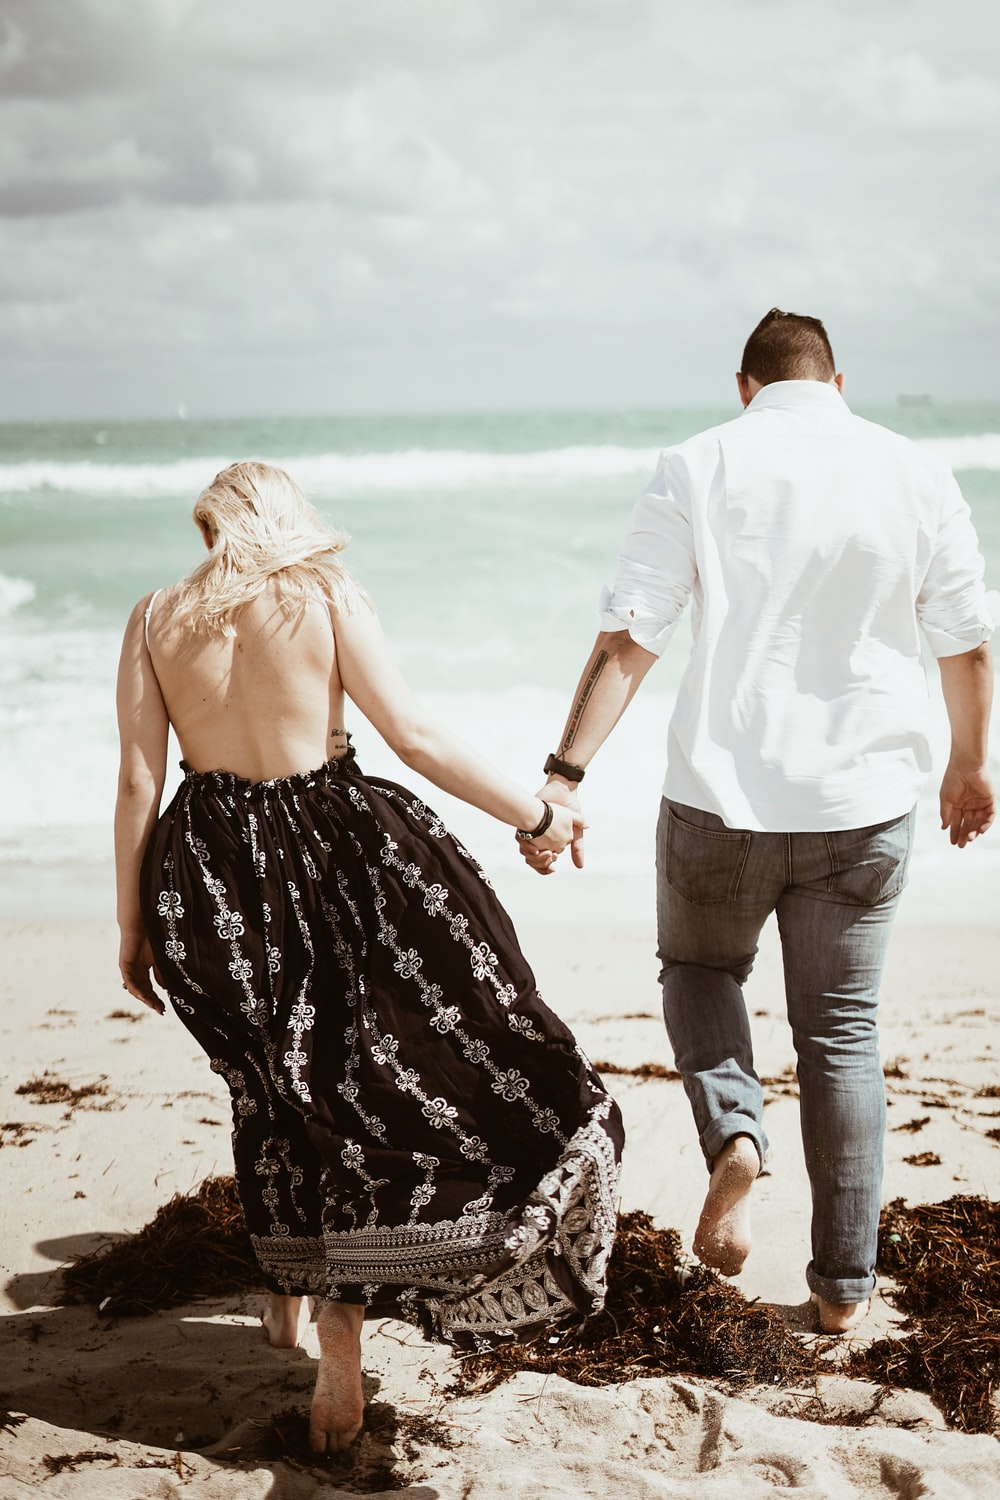 couple walking on sand near beach during daytime